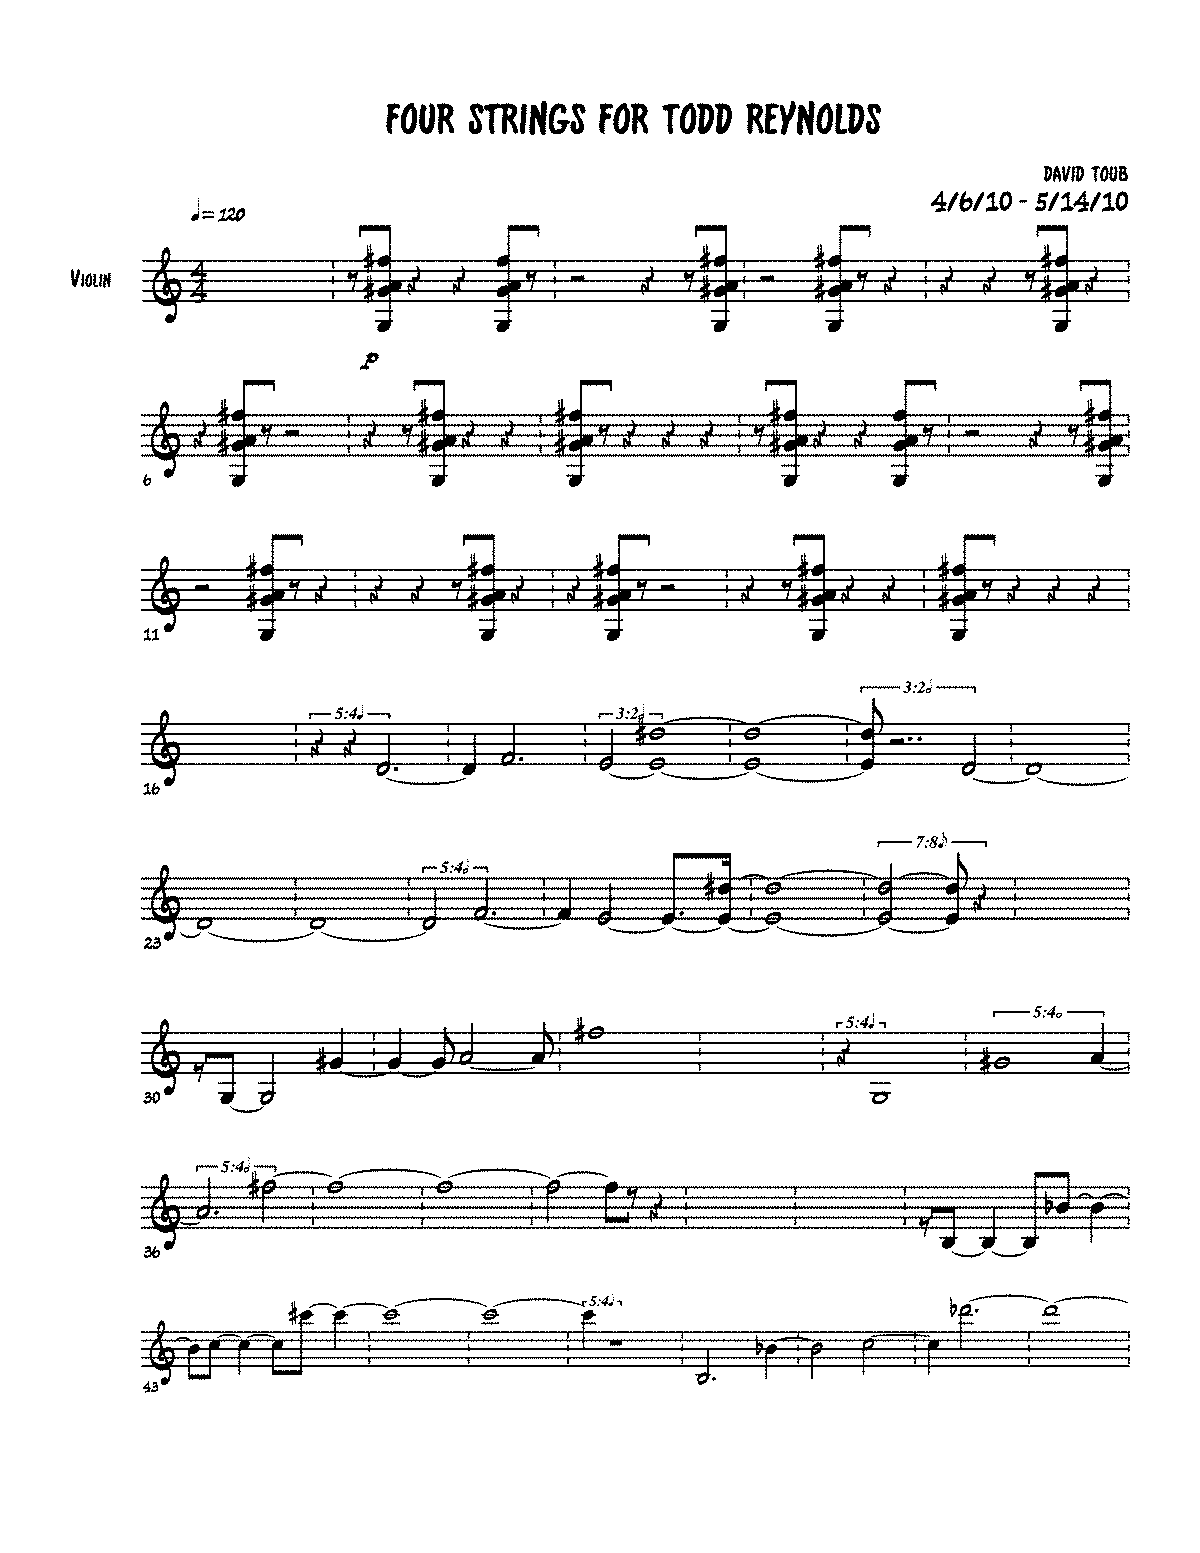 PMLP131537-four strings for todd reynolds.pdf